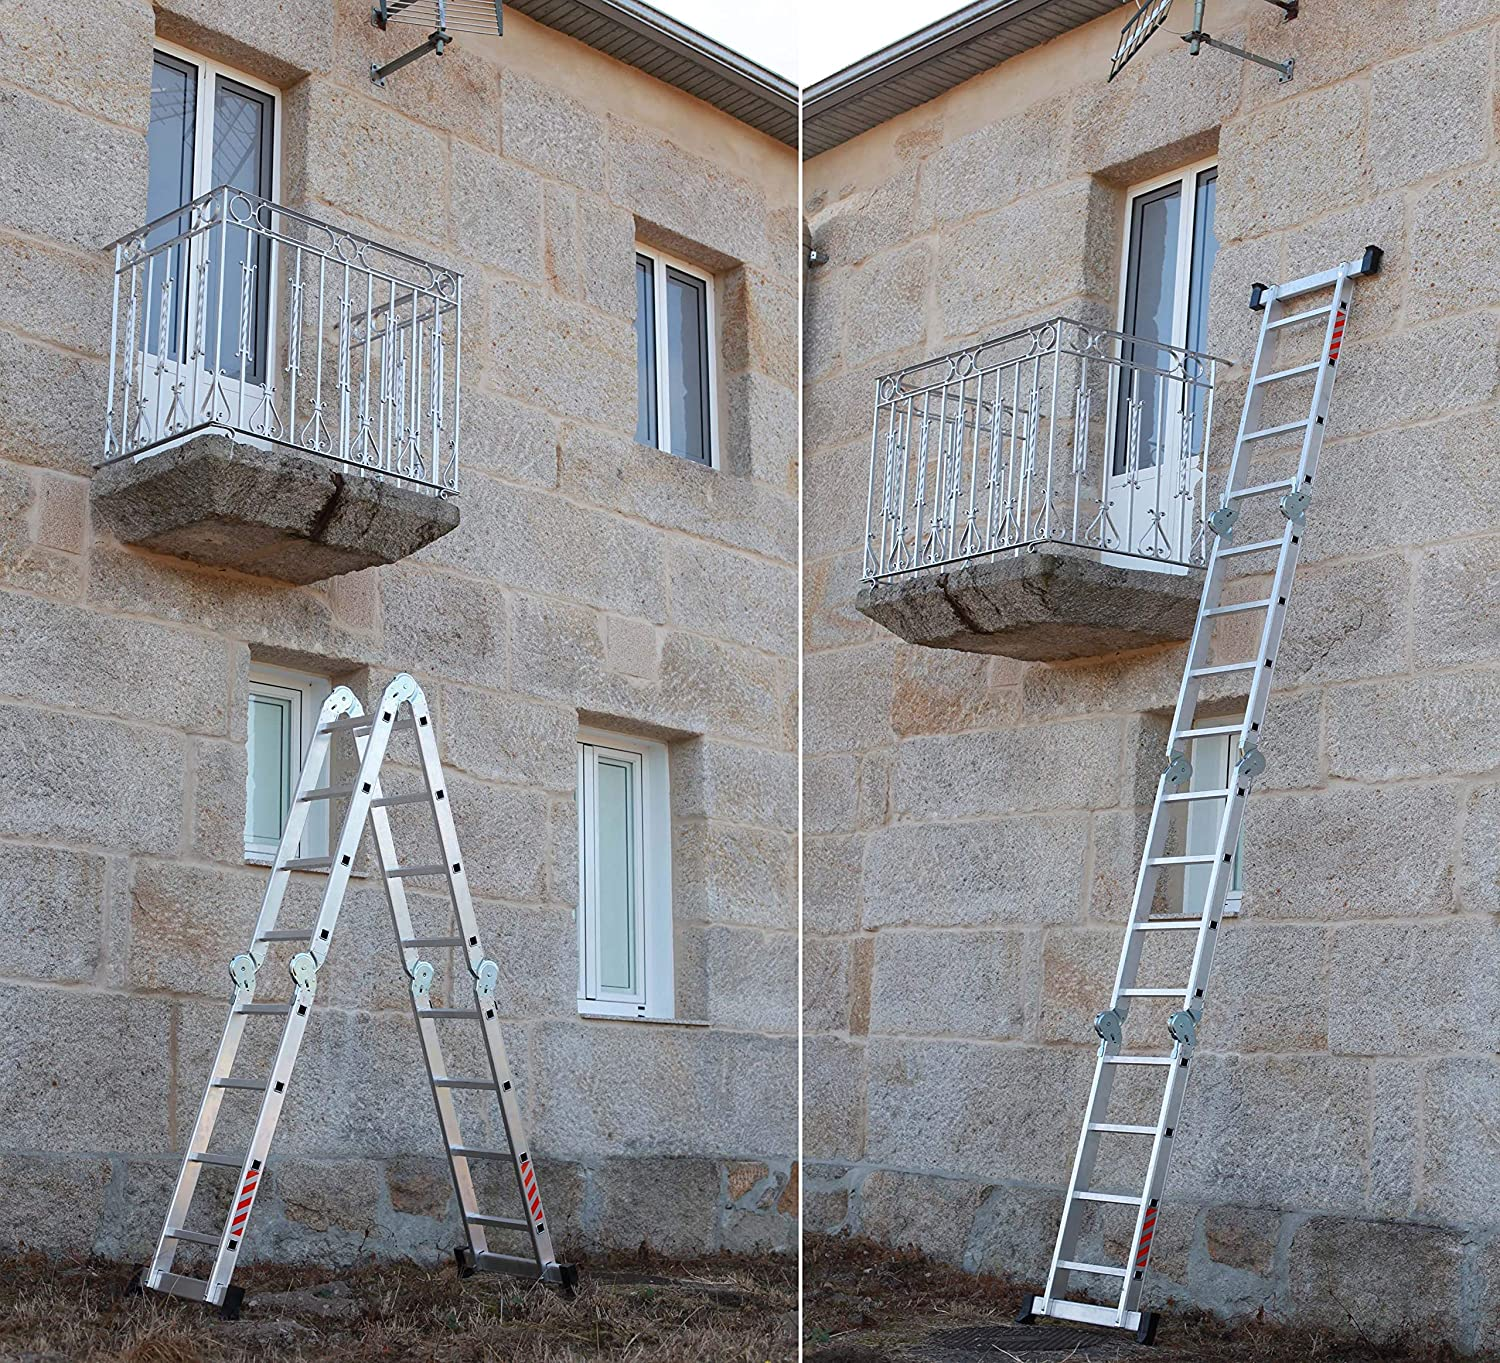 NAWA Escalera Multiusos 4x4 Máx. Carga de Capacidad 150 kg EN131. Hecho en Europa. (Multi-purpose Aluminium ladder Holds up to 150 kg Made in Europe) (4x4): Amazon.es: Bricolaje y herramientas